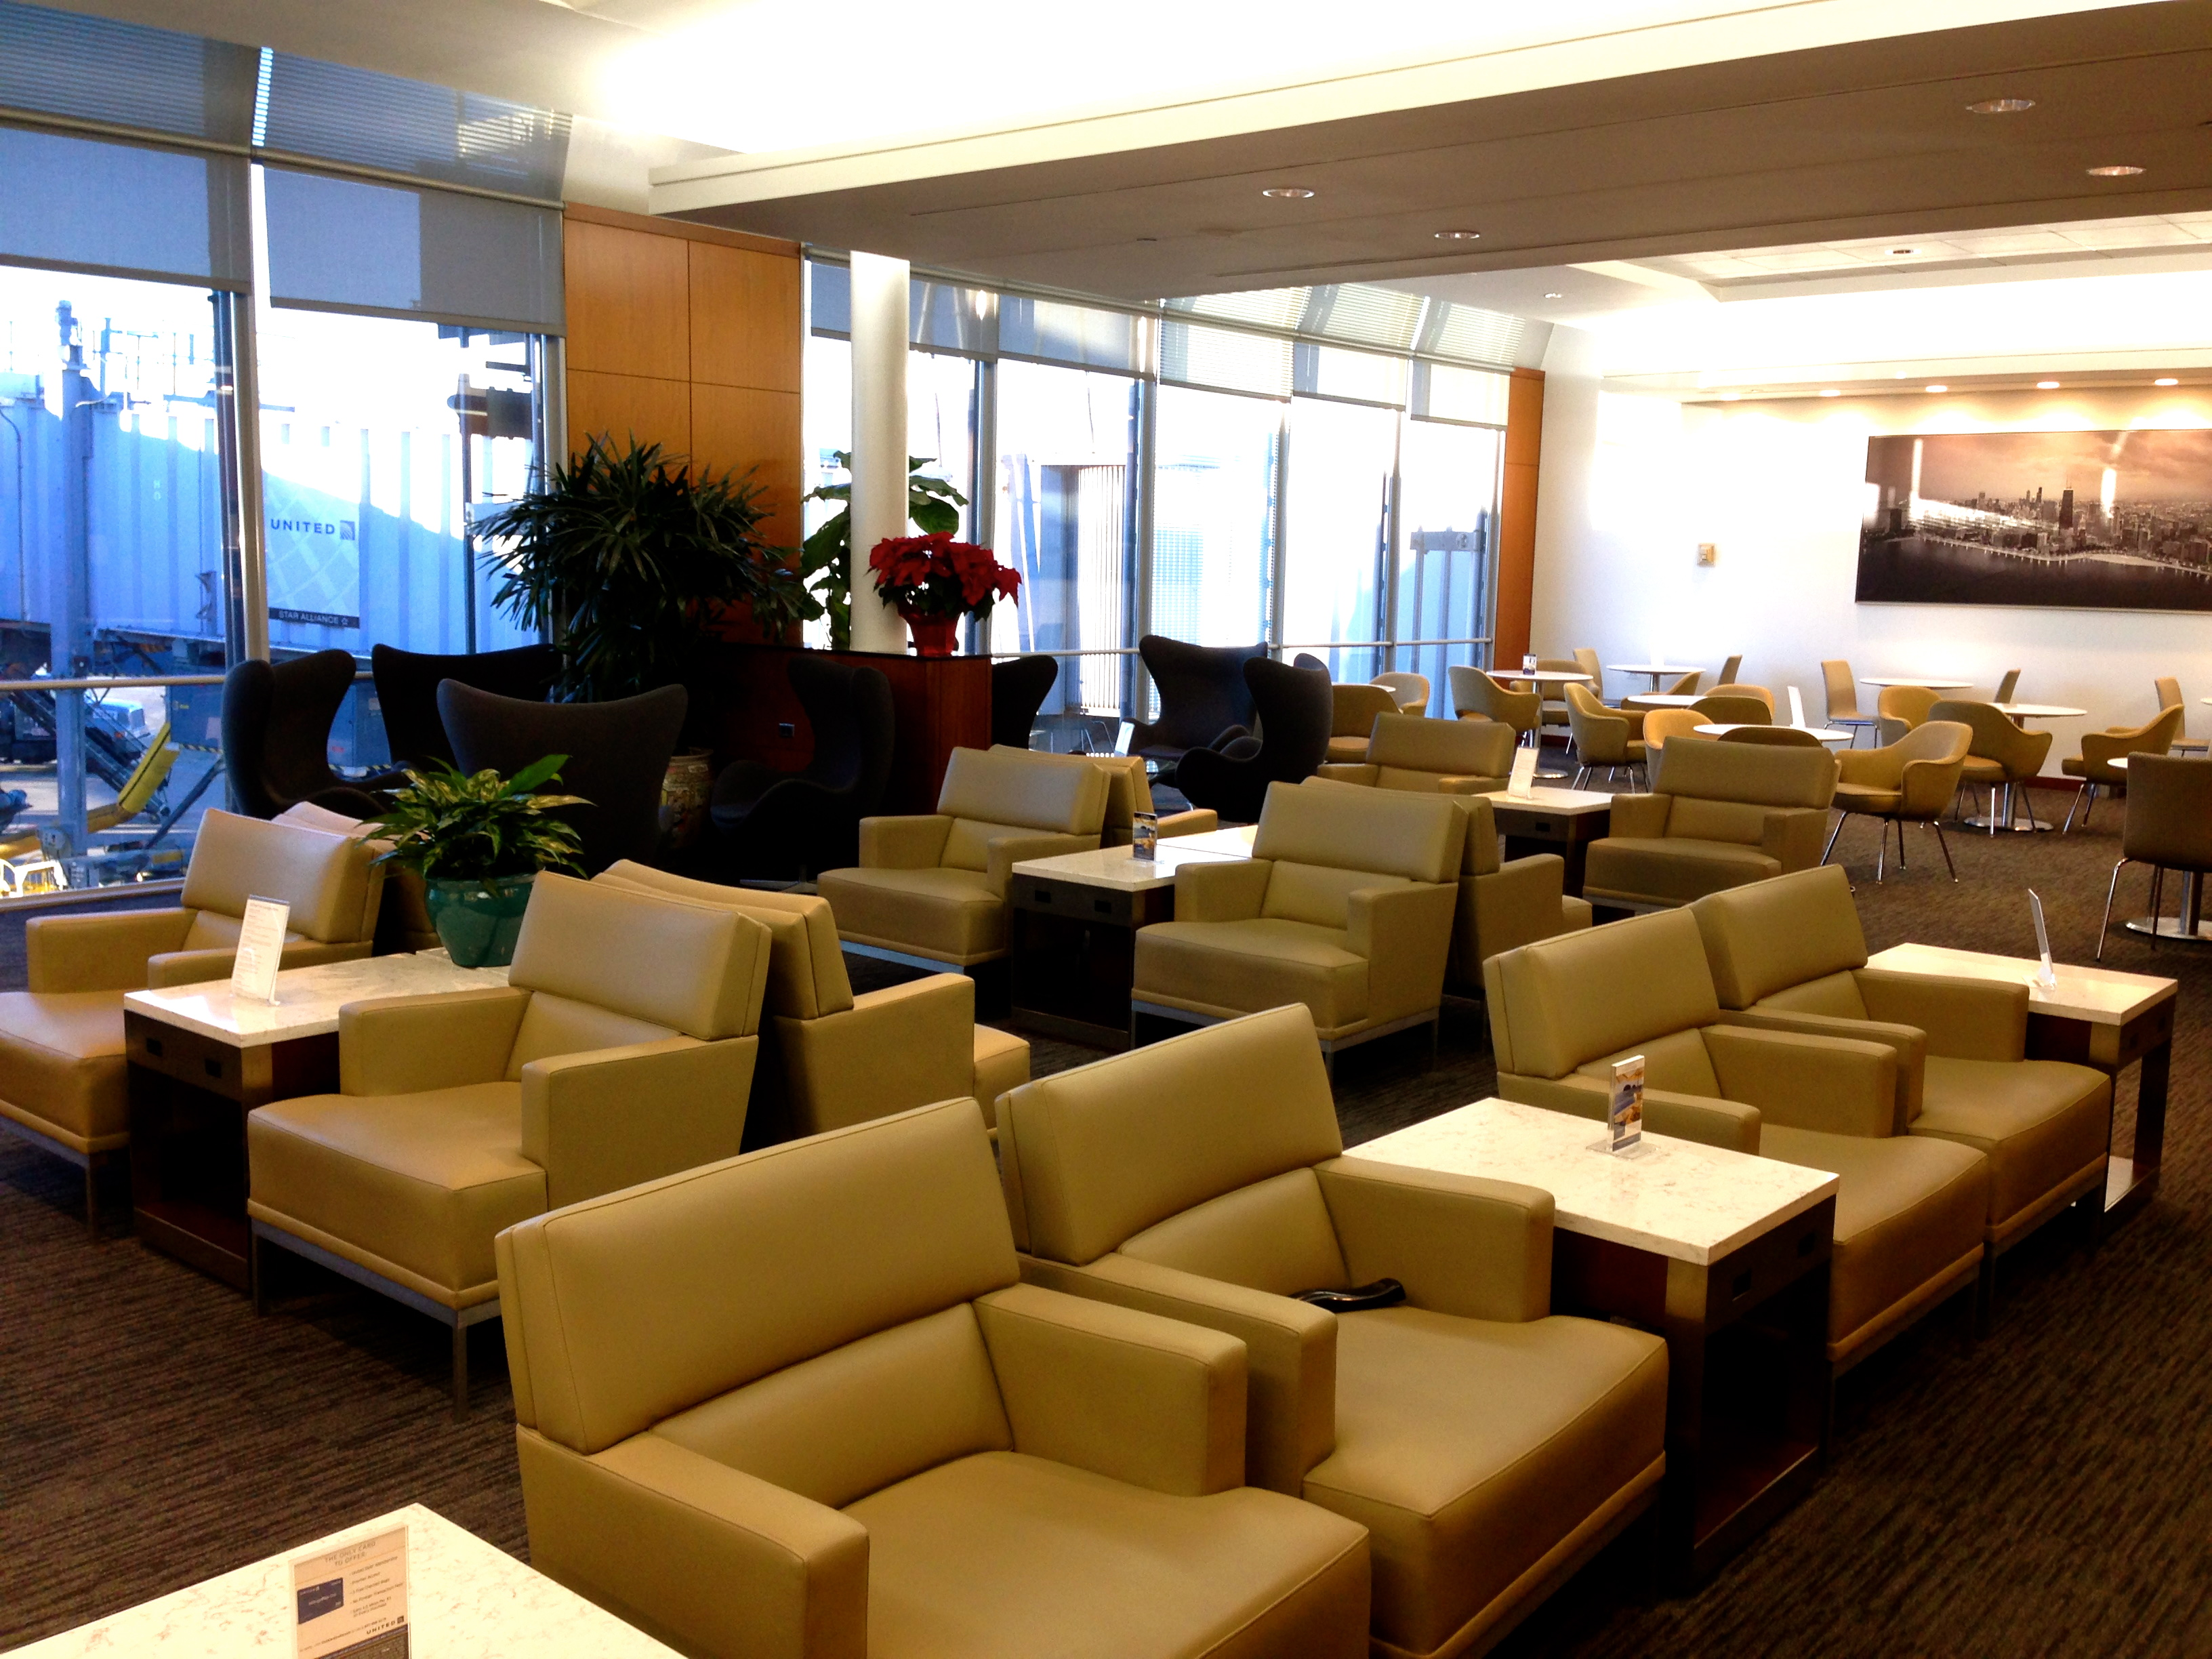 United Global First Class Lounge Chicago ORD O'Hare Airport New Lounge Design